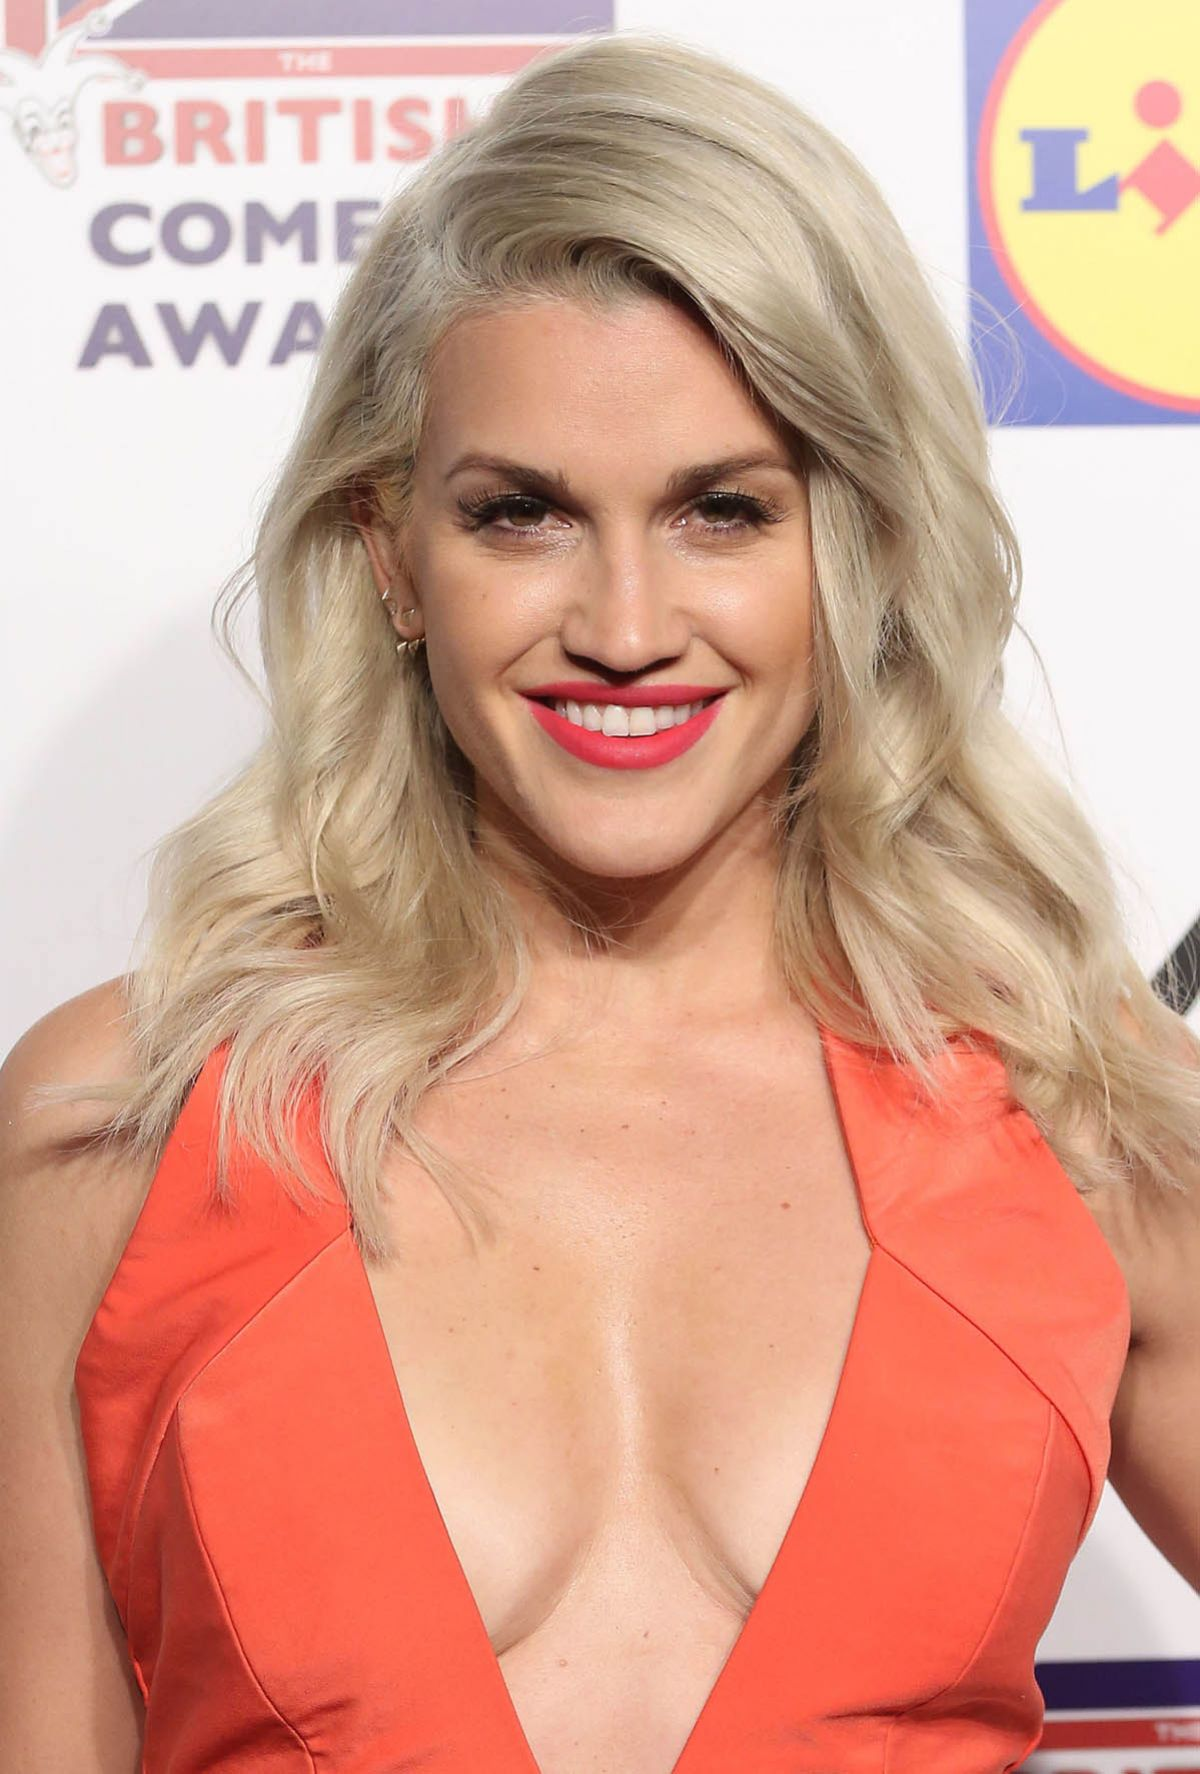 Ashley Roberts Ashley Roberts Archives Page 2 of 4 HawtCelebs